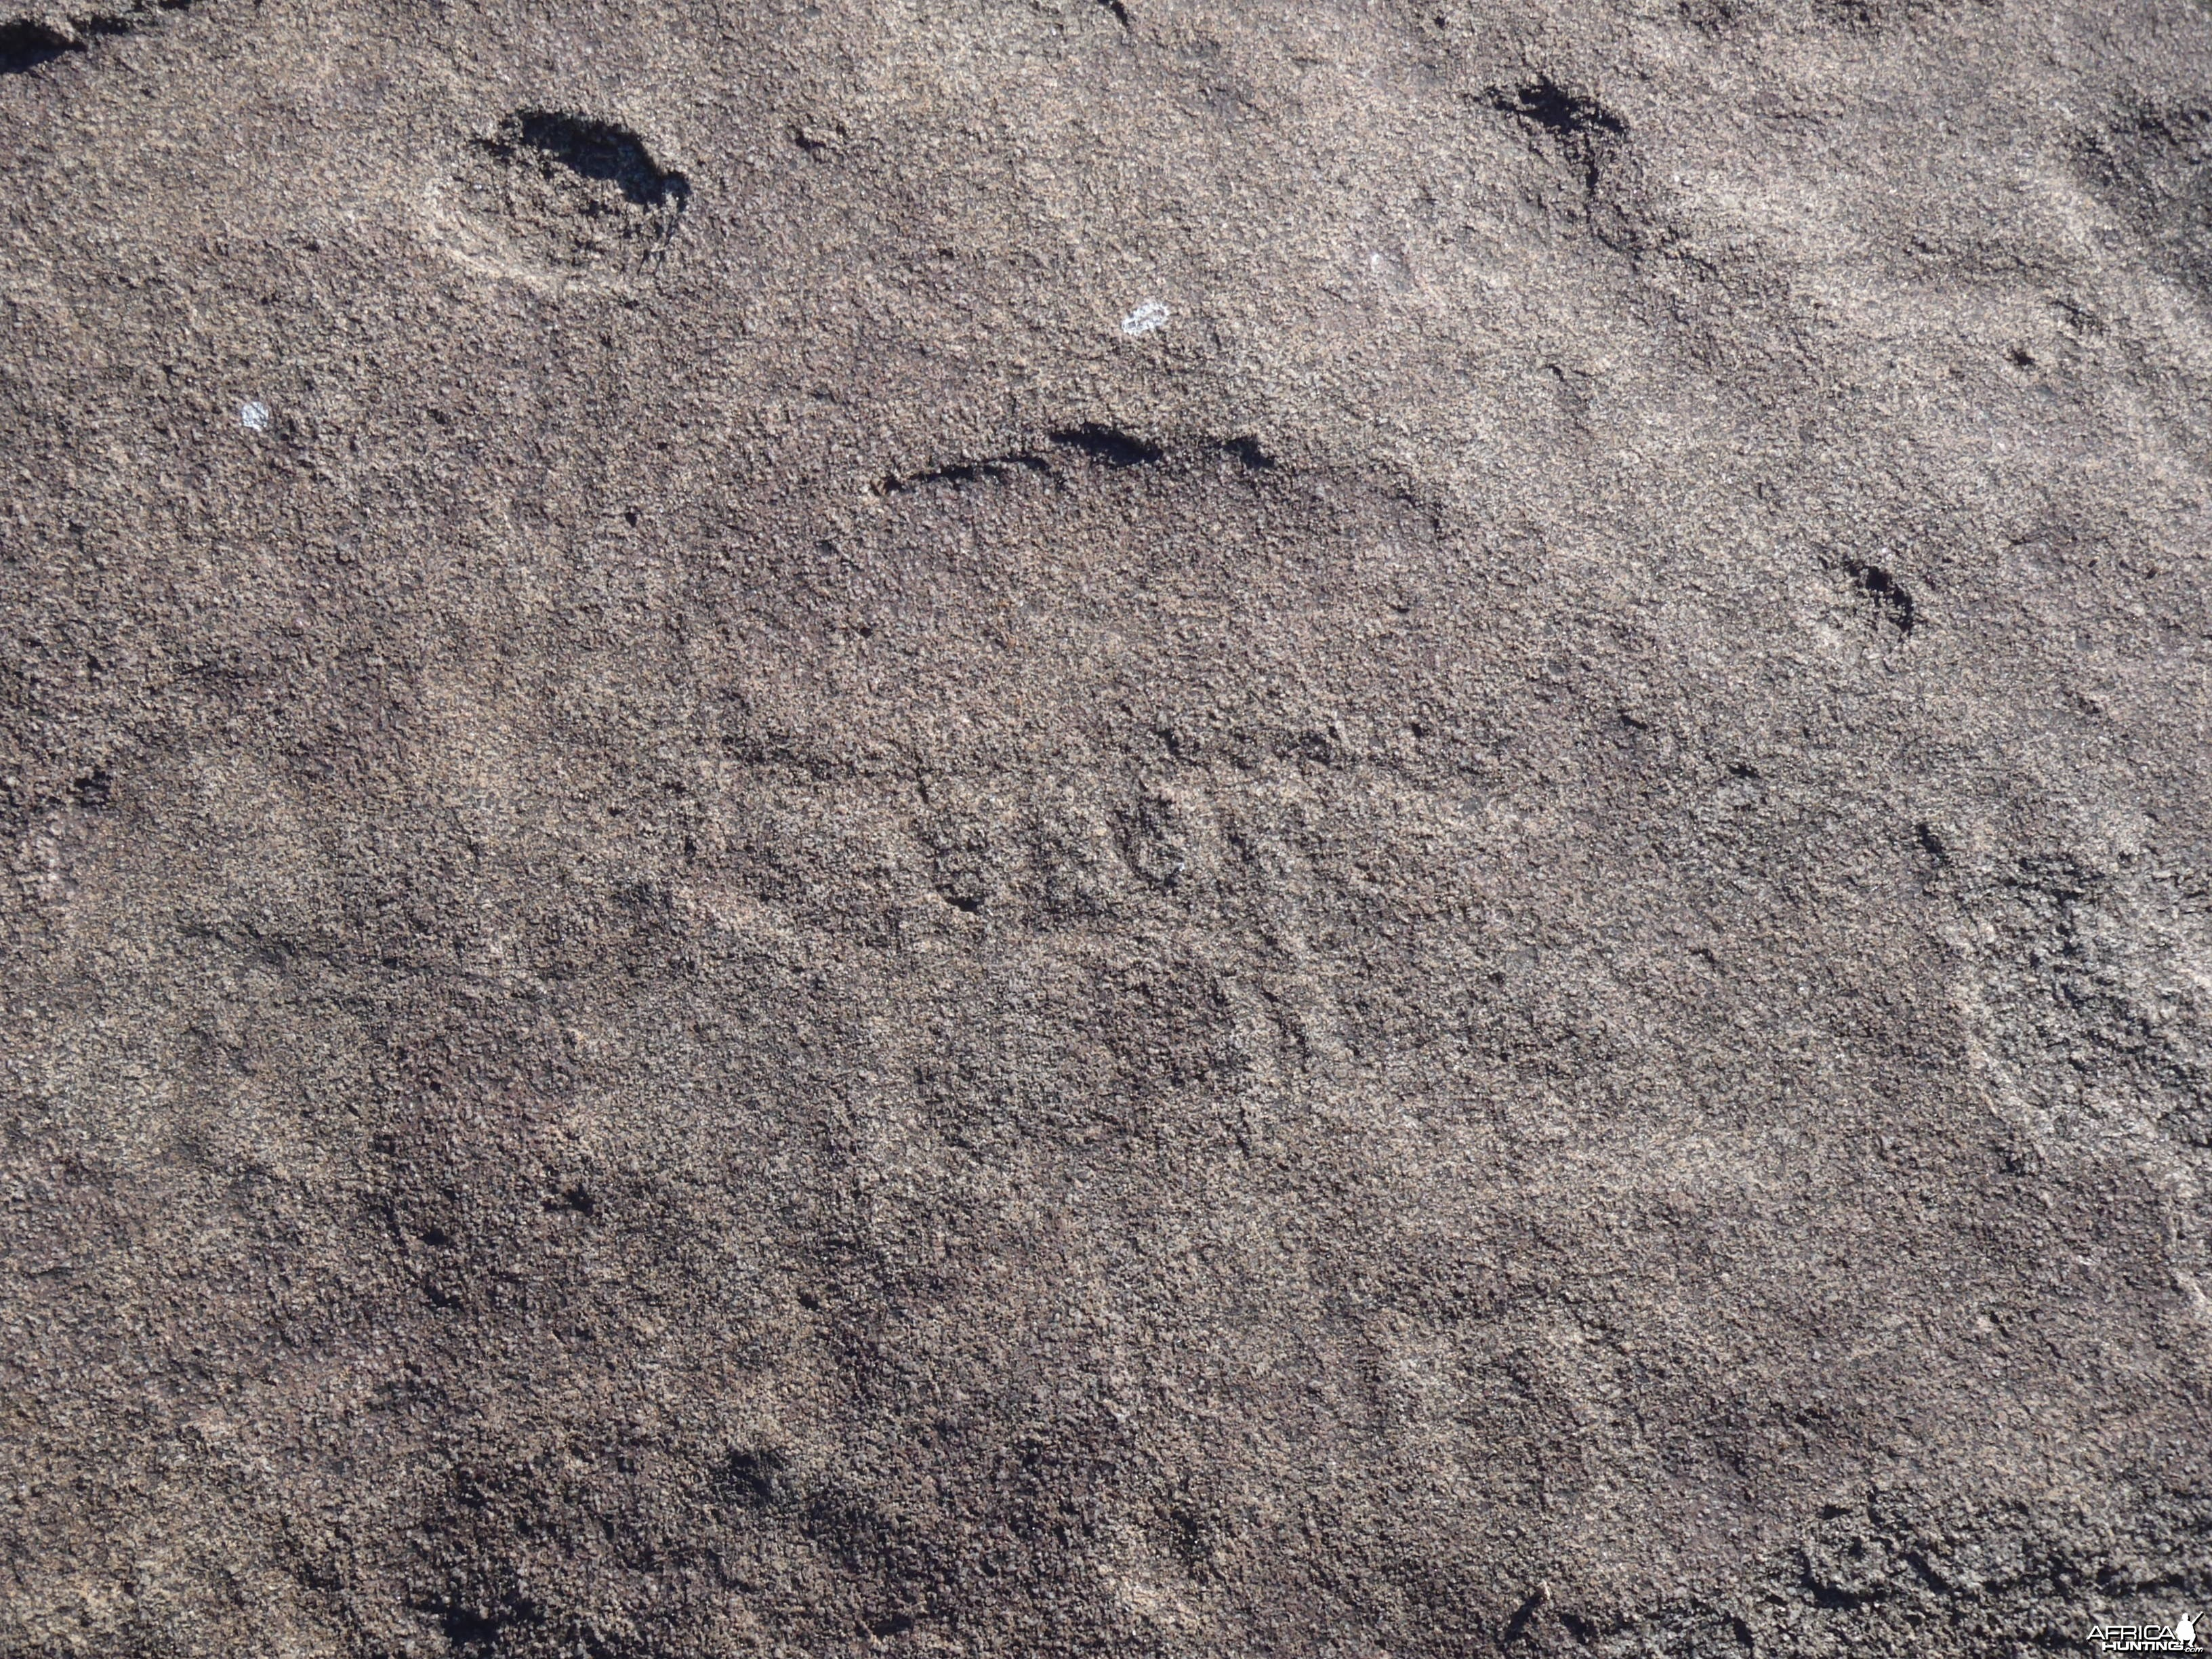 Bushman rock engraving of antelope in Namibia